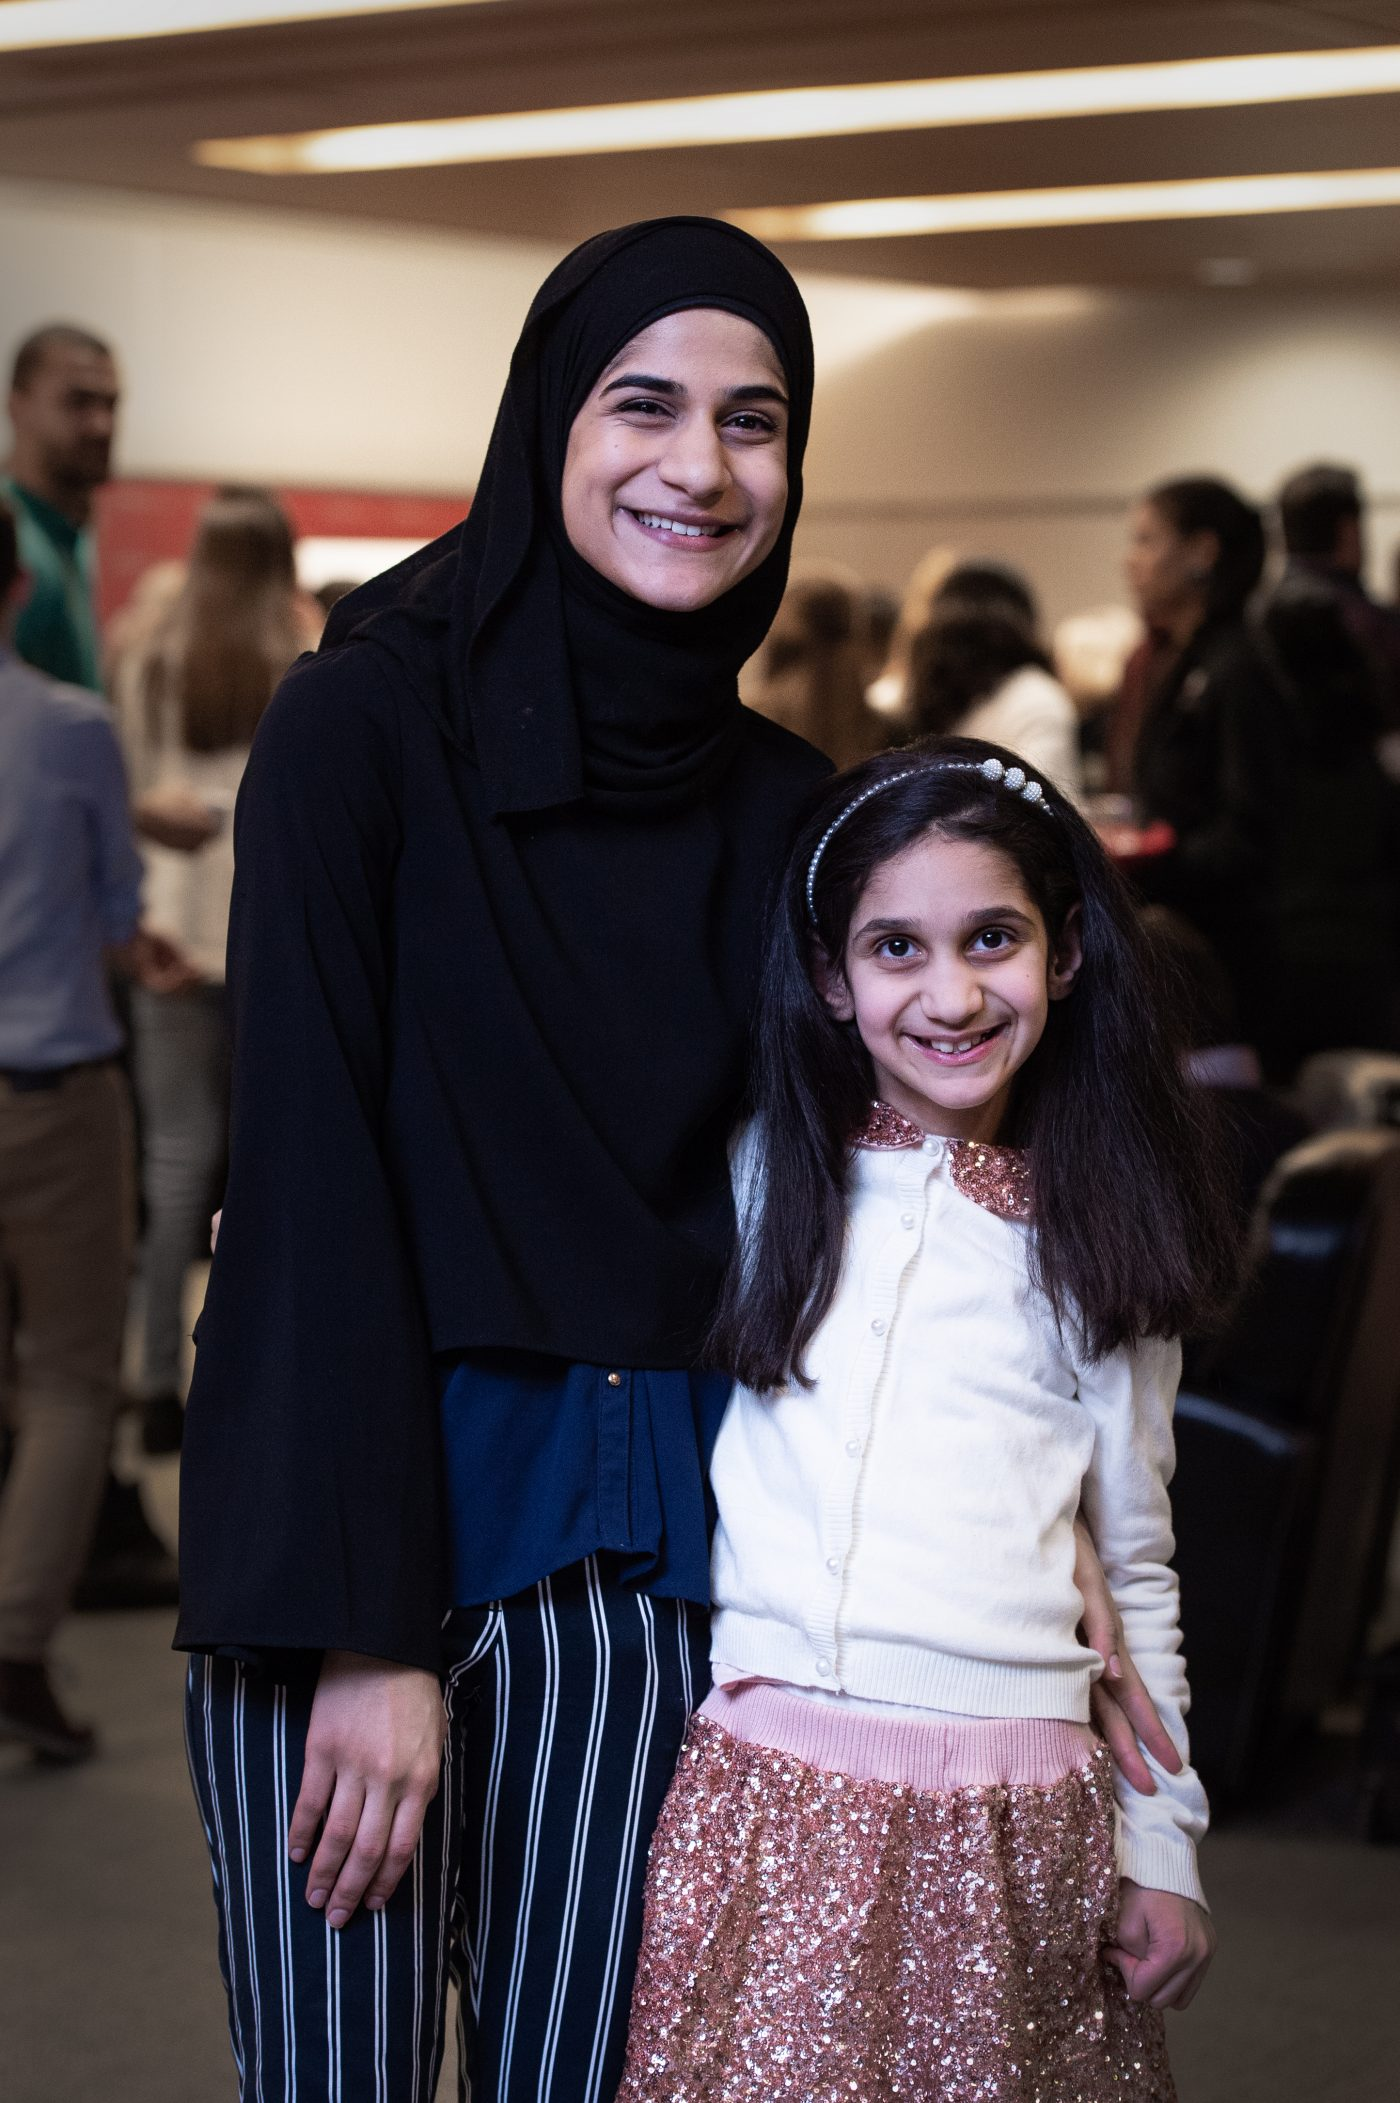 Fatma Alobeid poses with her little sister, Narjis.